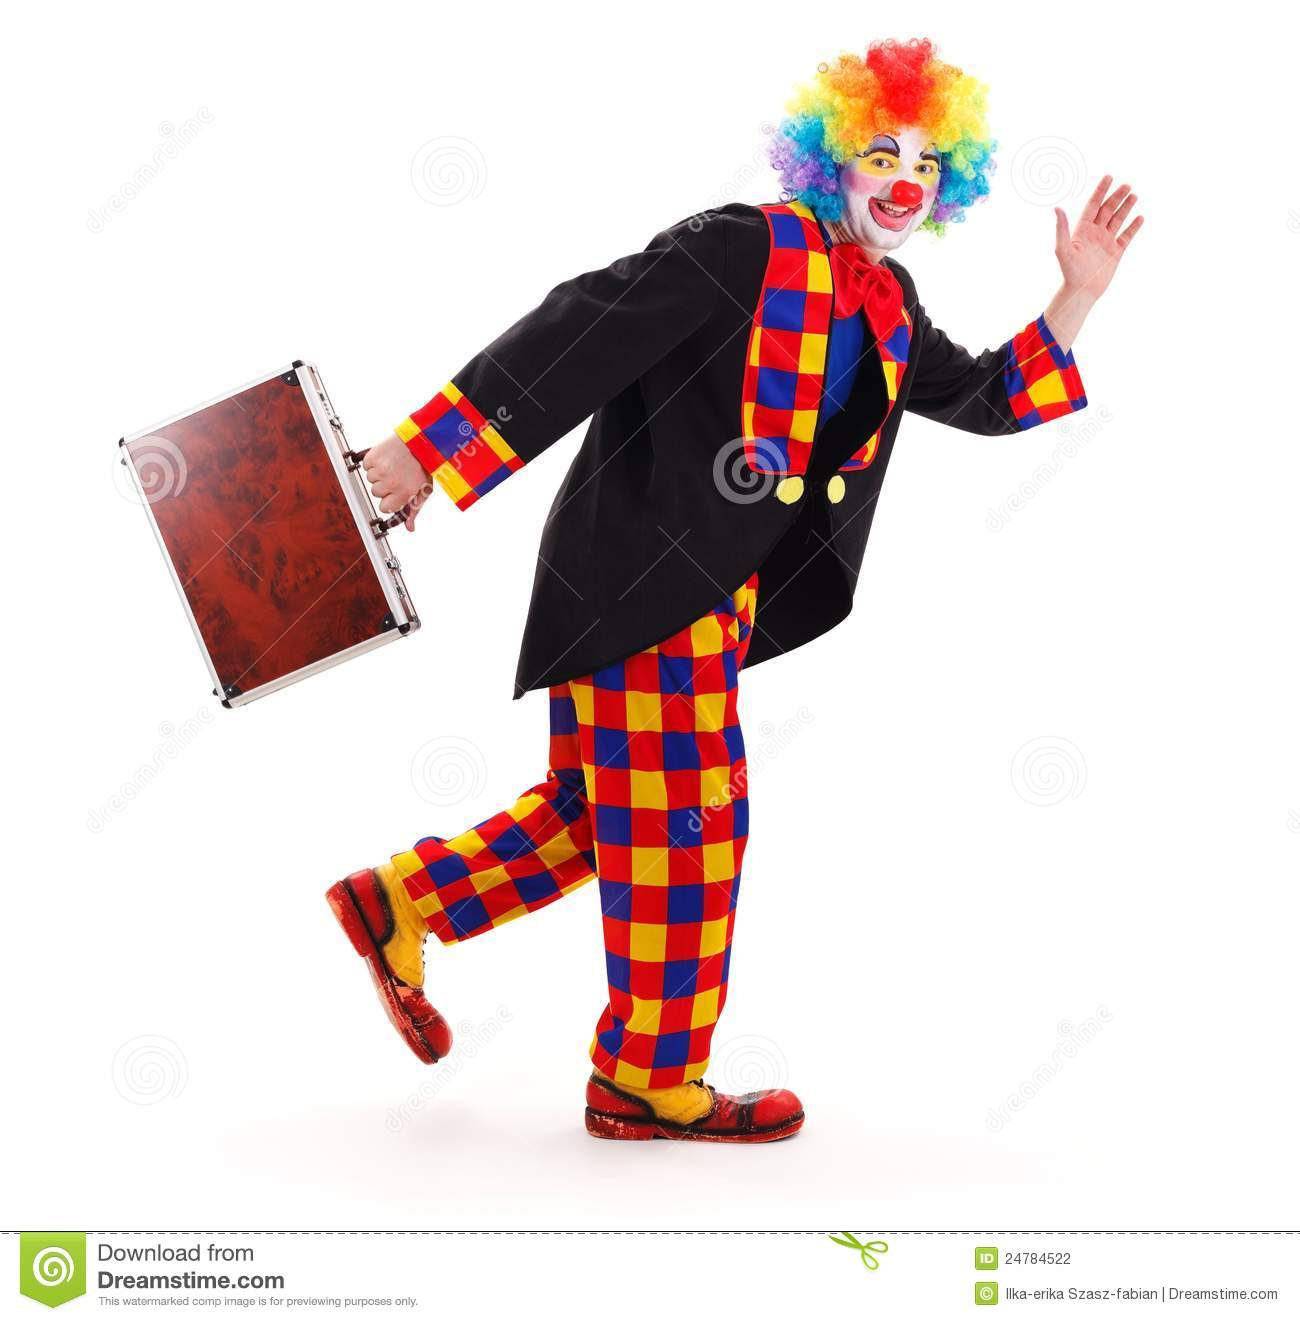 Happy clown walking away while swaying briefcase and waving with hand.